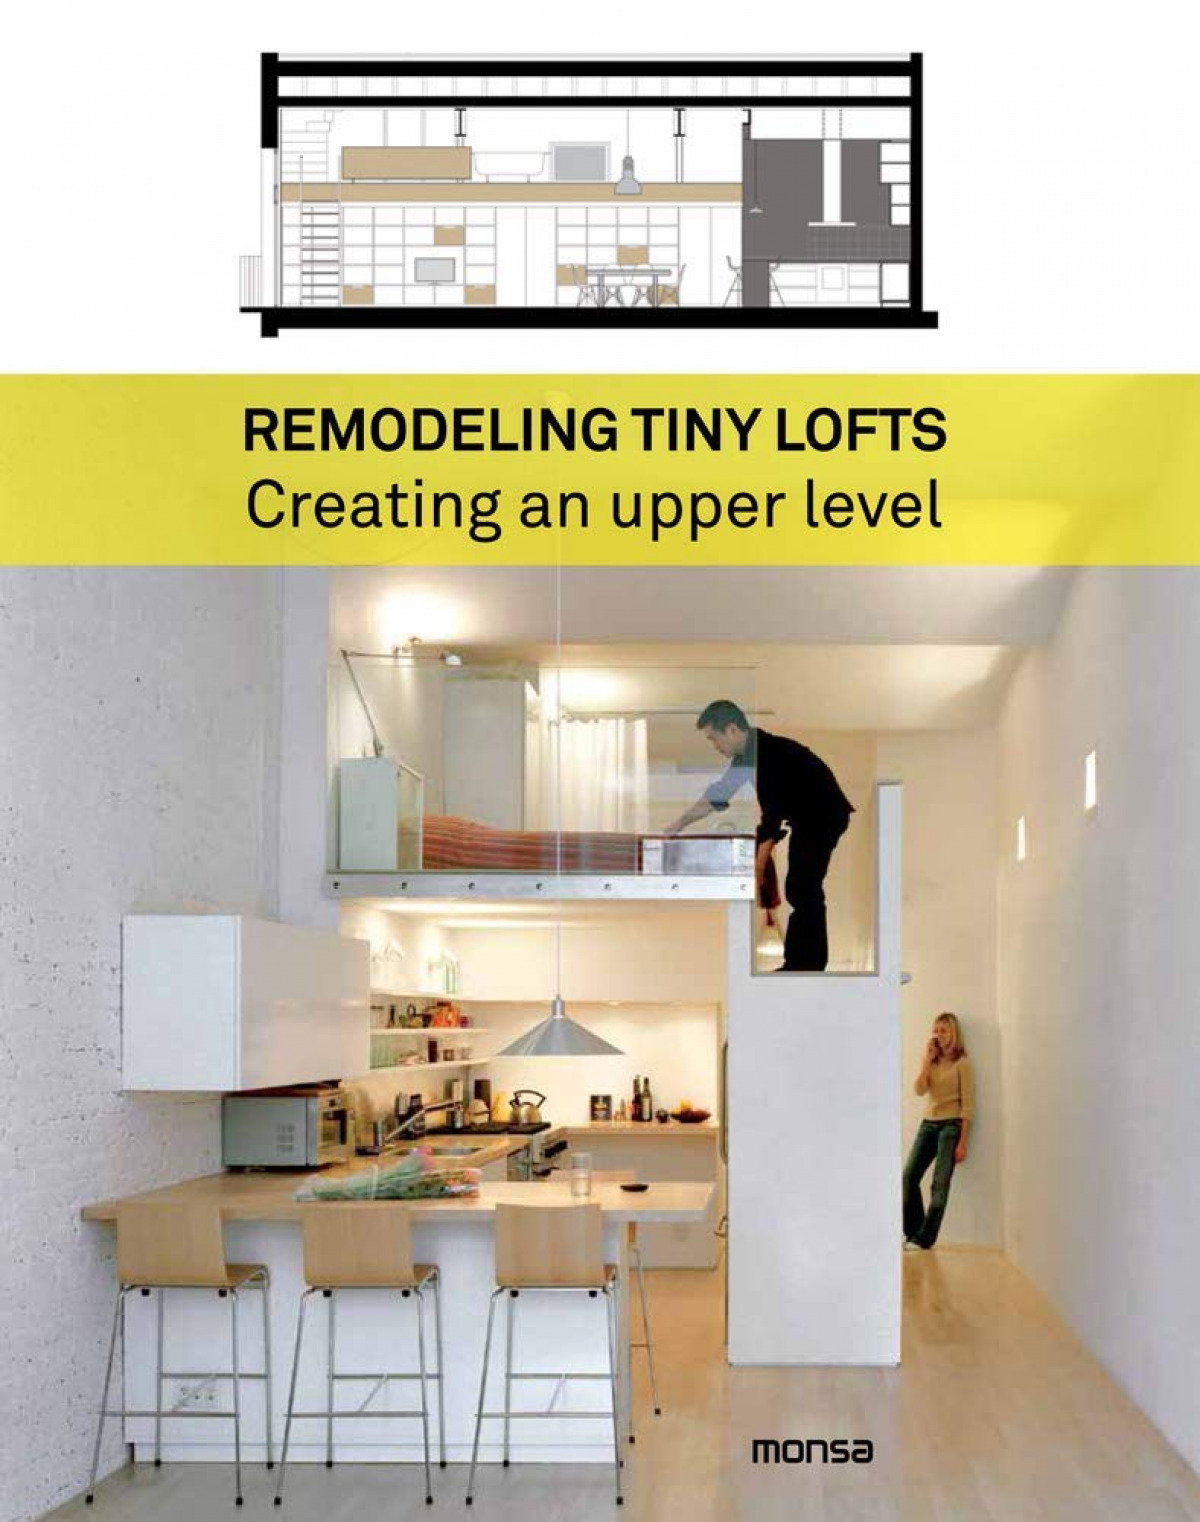 REMODELING TINY LOFTS